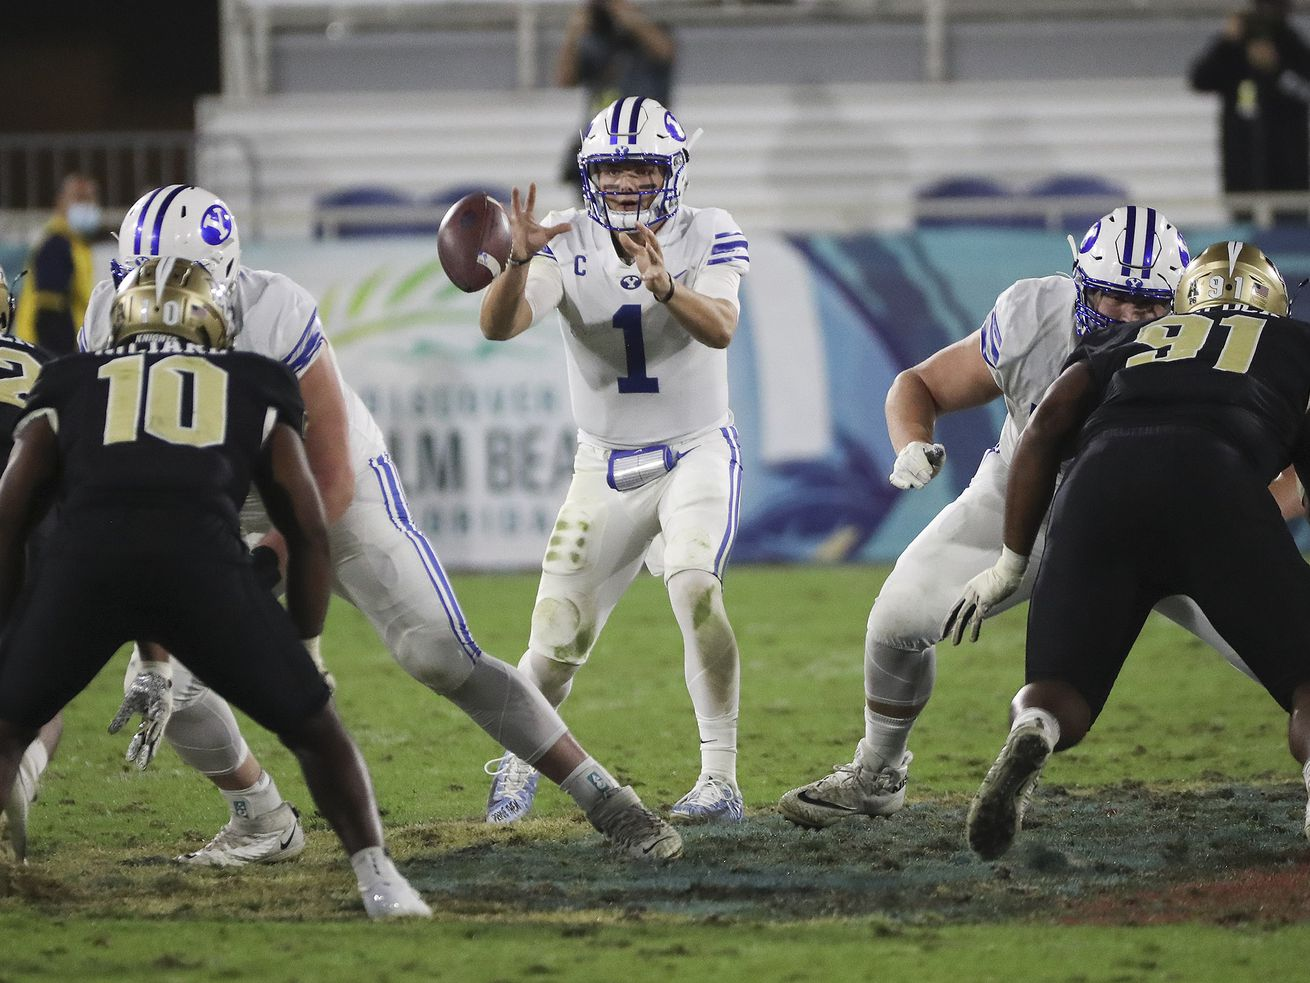 Brigham Young Cougars quarterback Zach Wilson (1) takes a snap during the Boca Raton Bowl in Boca Raton, Fla., on Tuesday, Dec. 22, 2020.